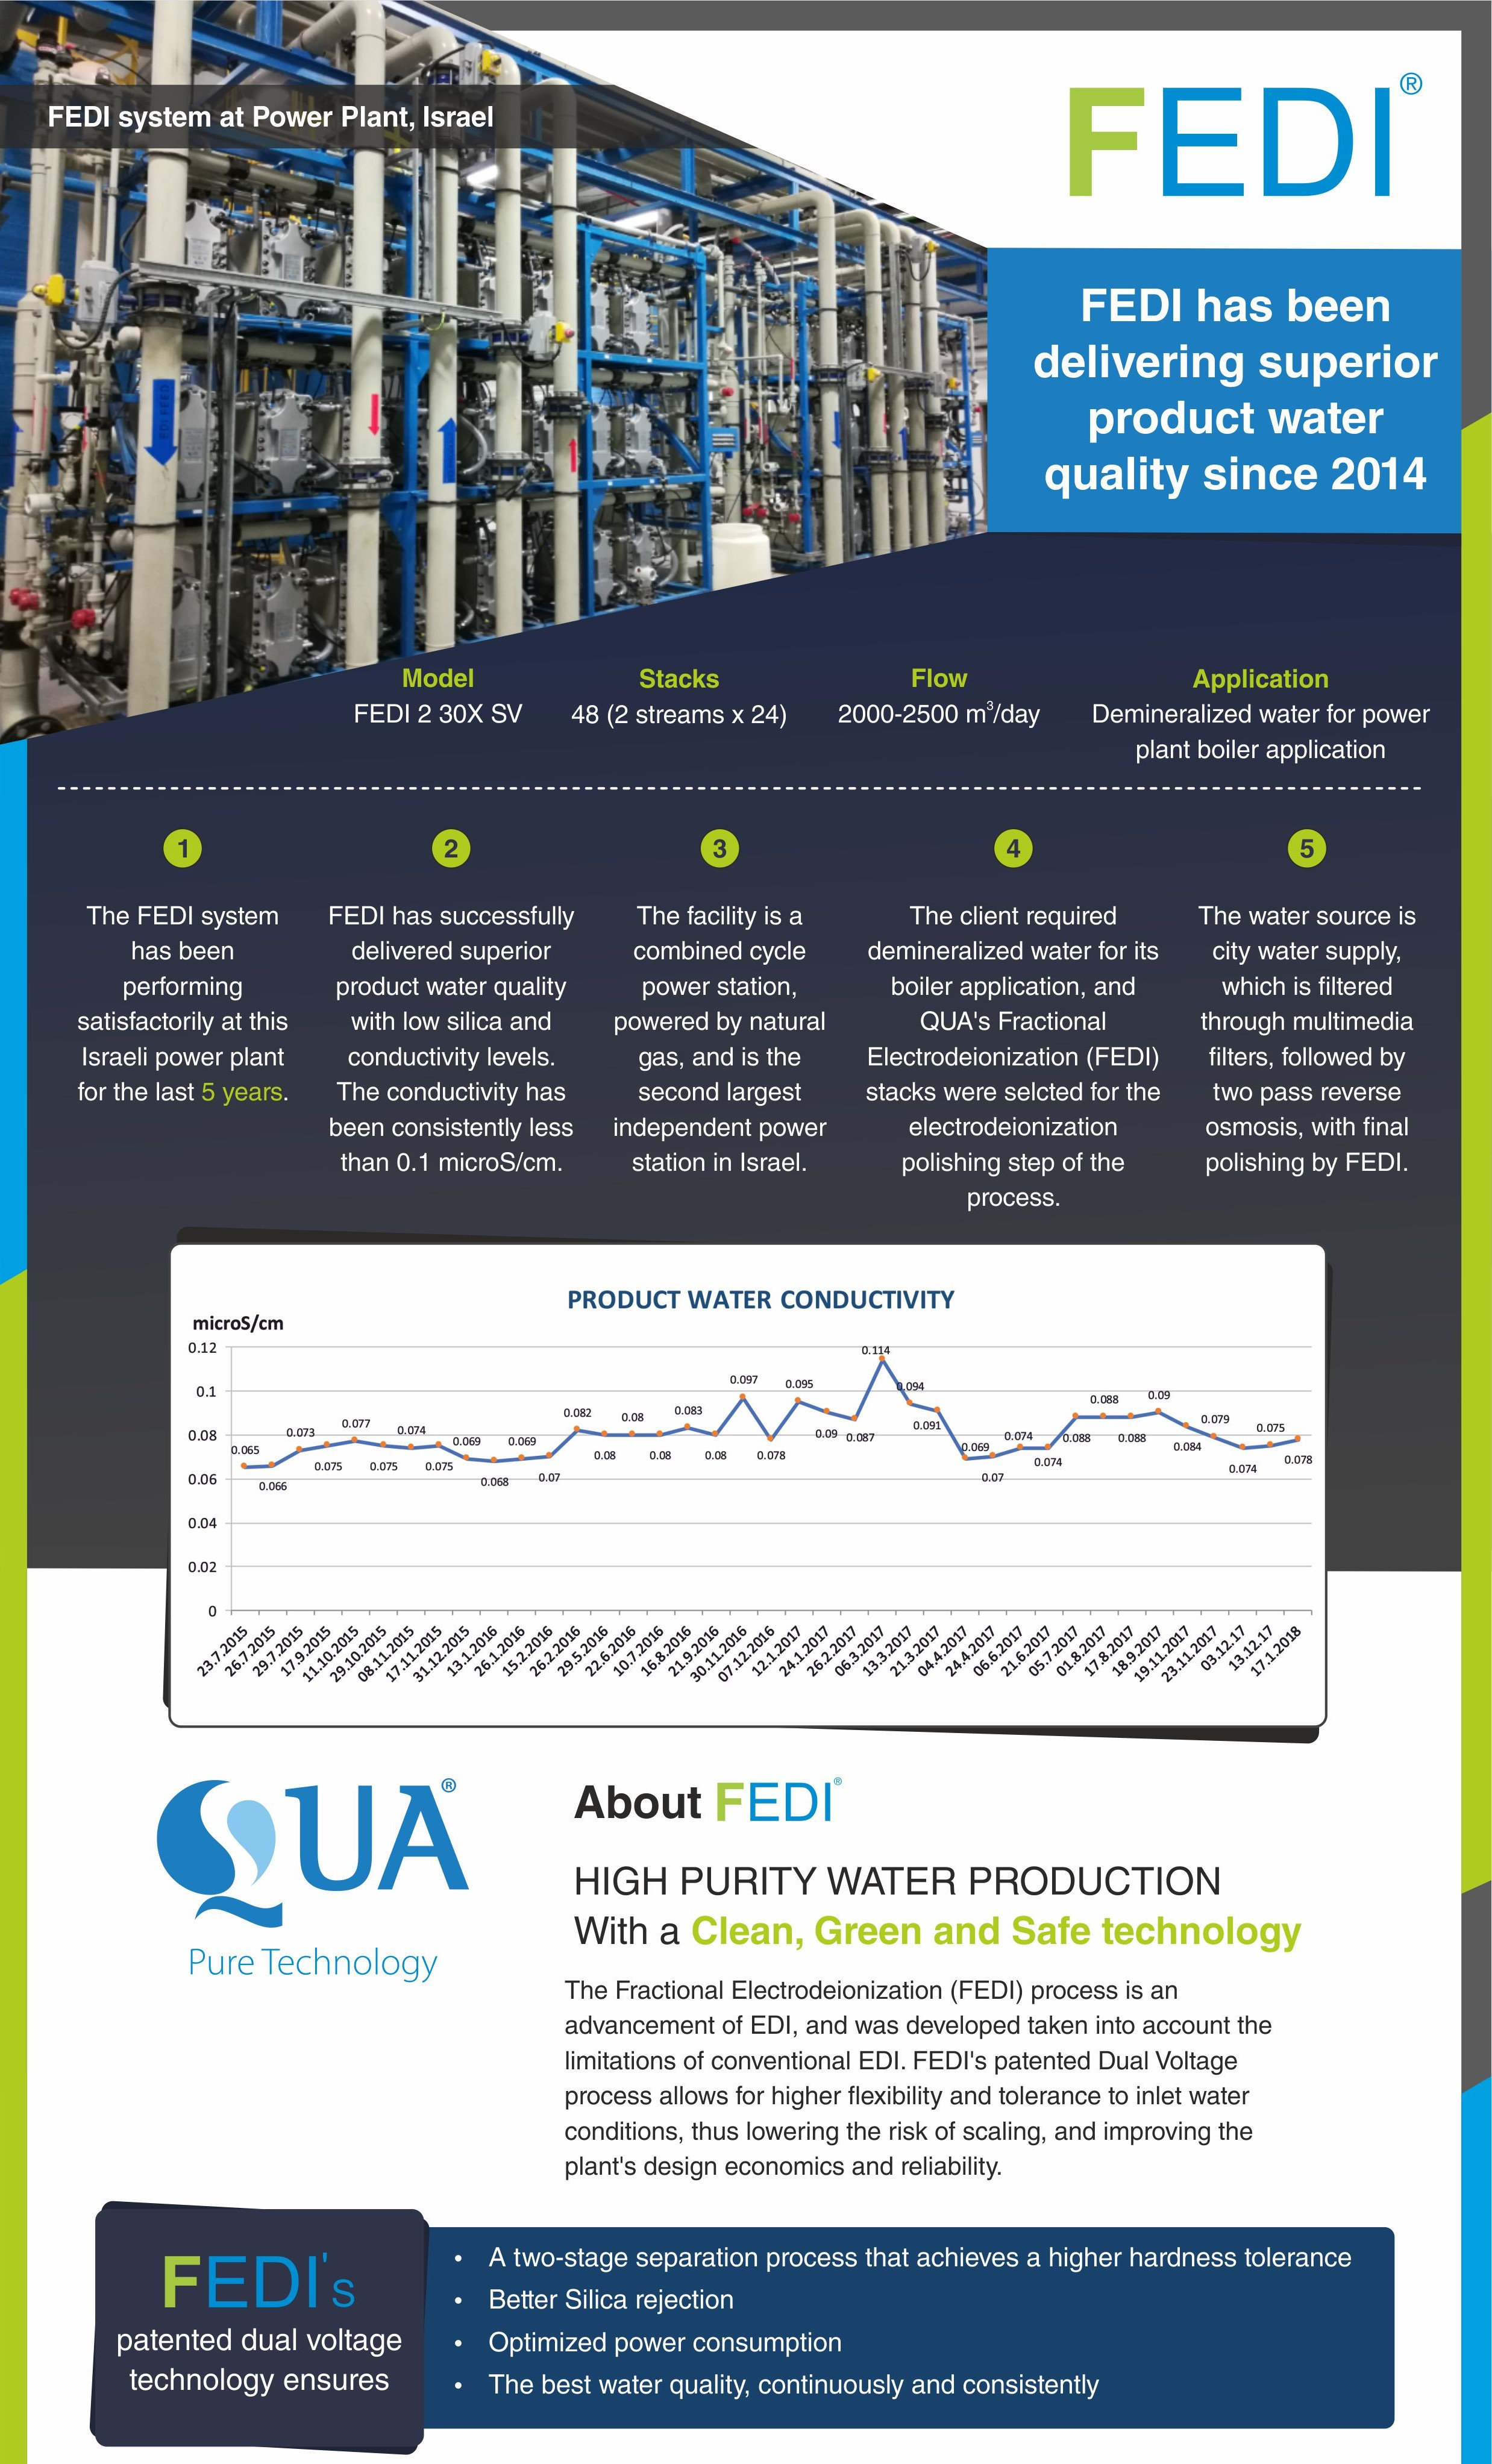 QUA's FEDI Technology Provides 5 Years of Superior Water Quality for Power Plant in Israel